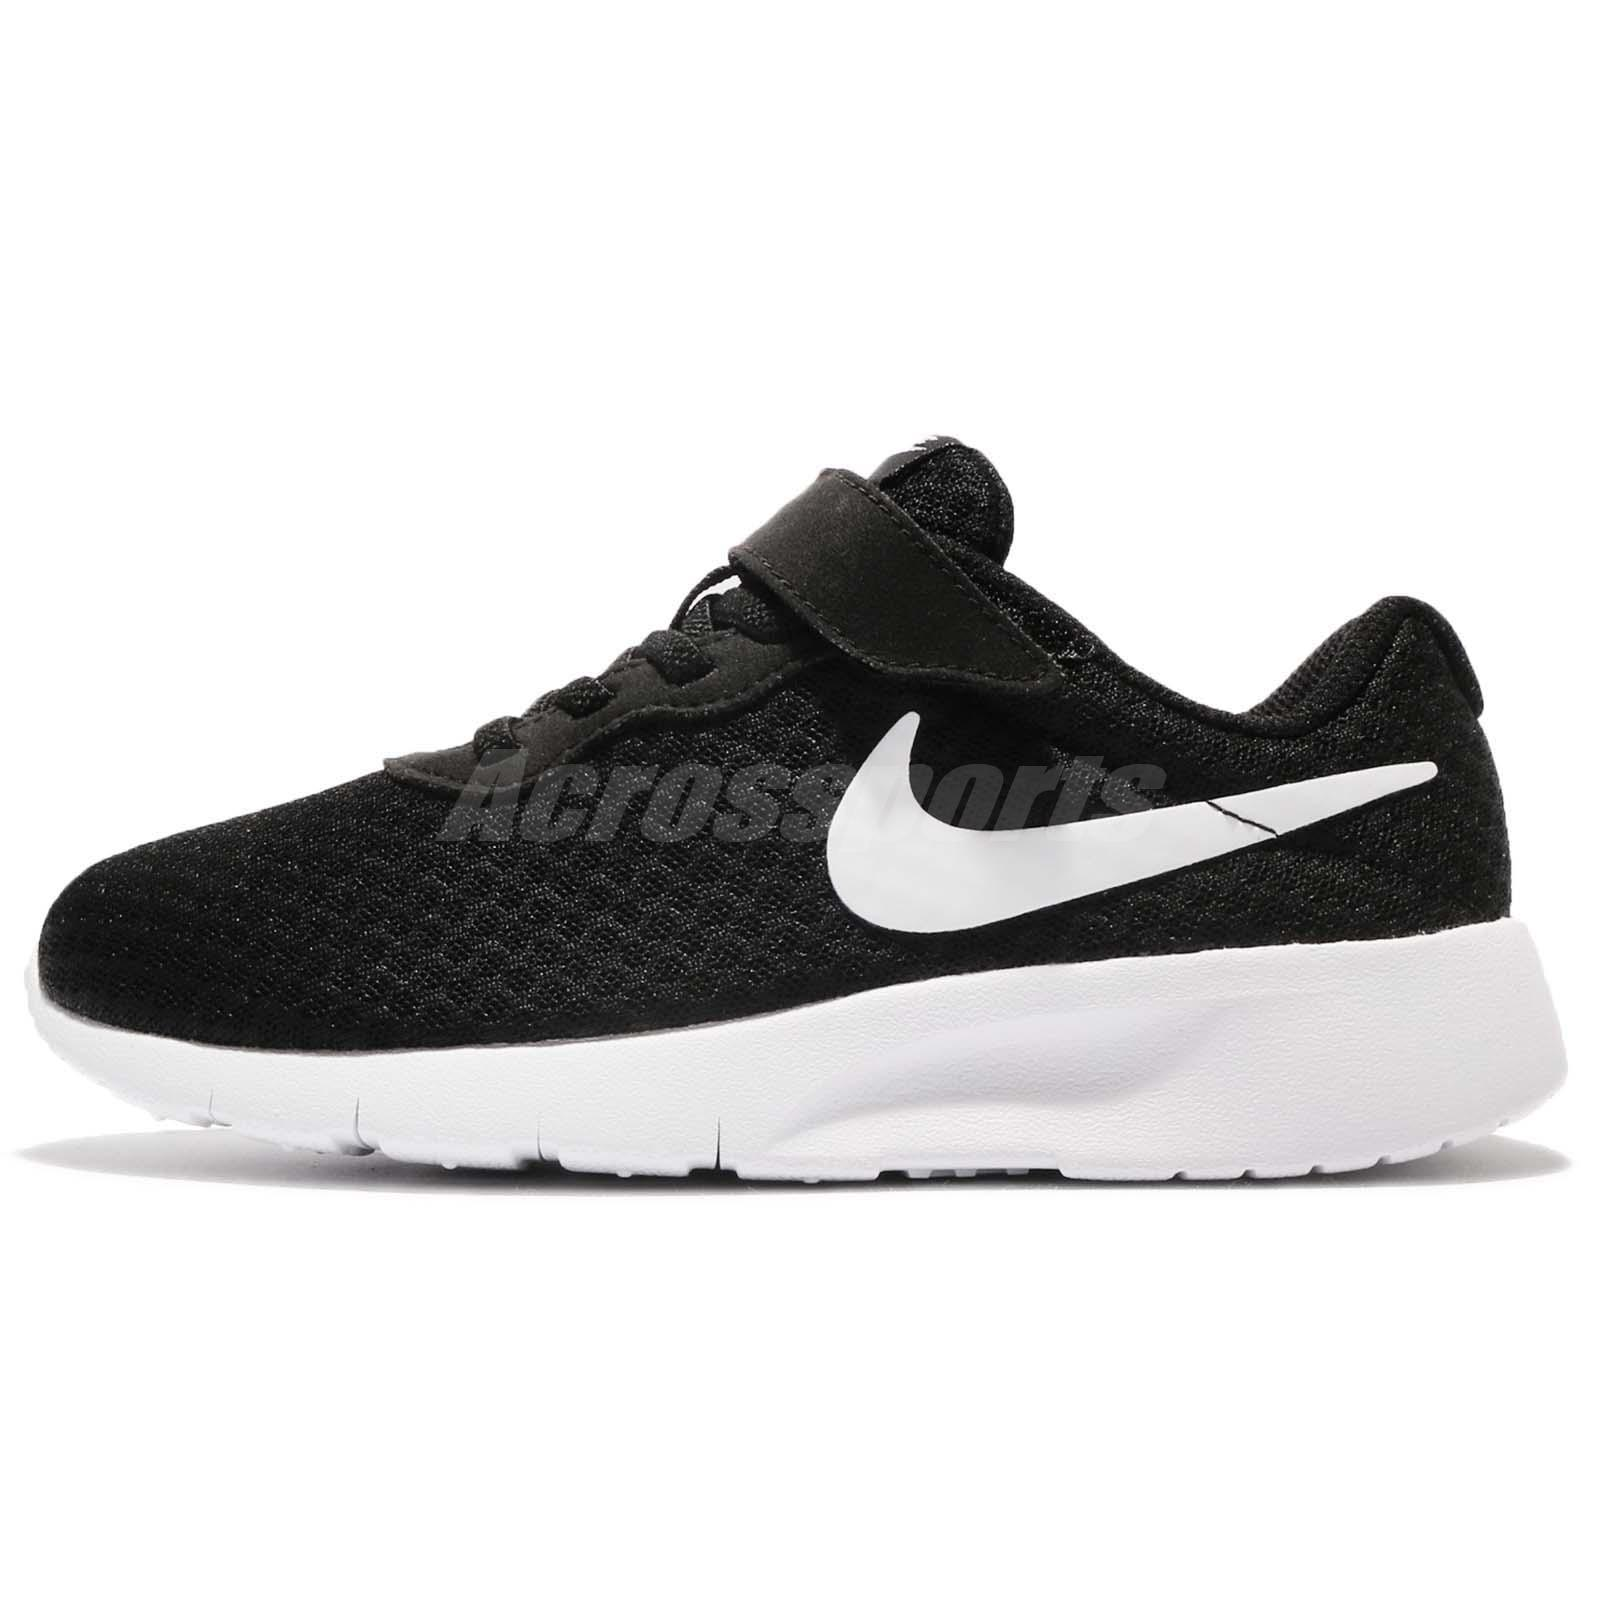 fe6ce12433 Nike Tanjun PSV Black White Preschool Boys Girls Running Shoe Sneaker  844868-011